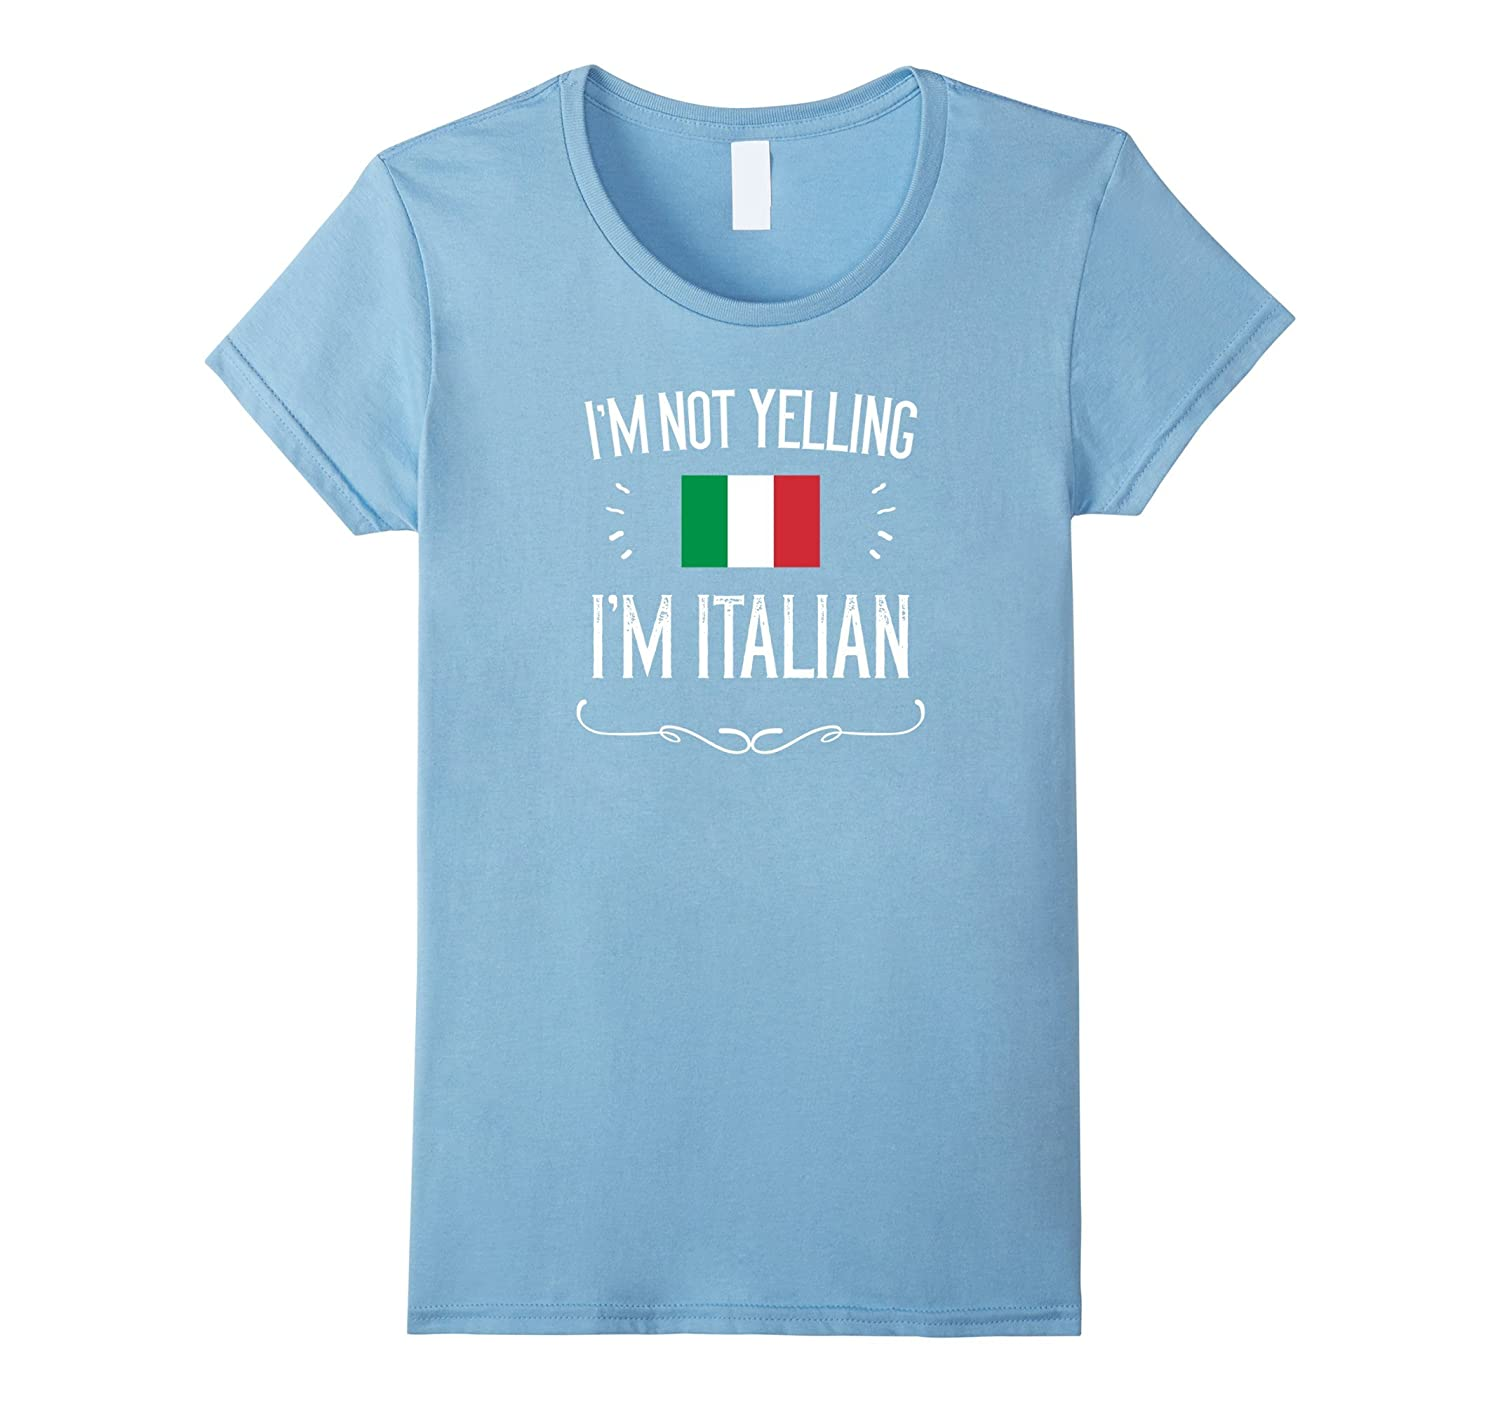 Amazon.com: Im Not Yelling Im Italian Shirt, Funny Italy T-Shirt: Clothing